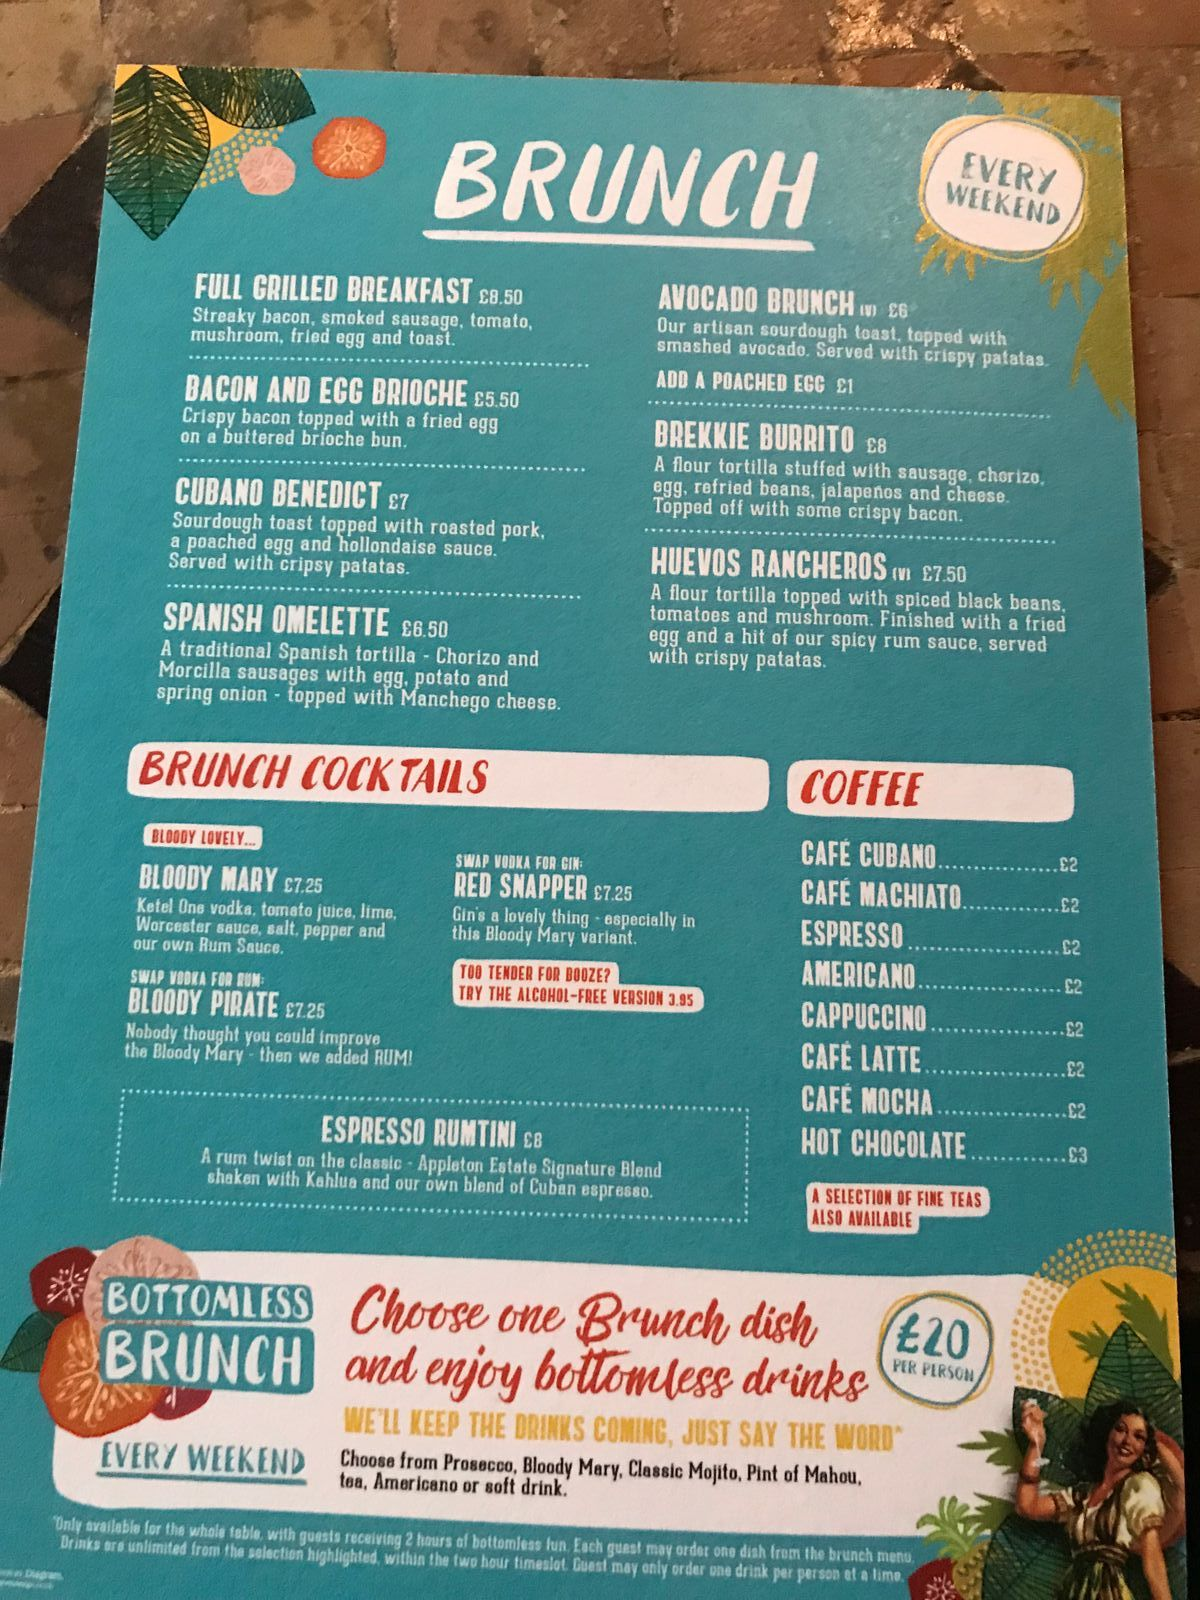 bottomless brunch menu revs de cuba cardiff